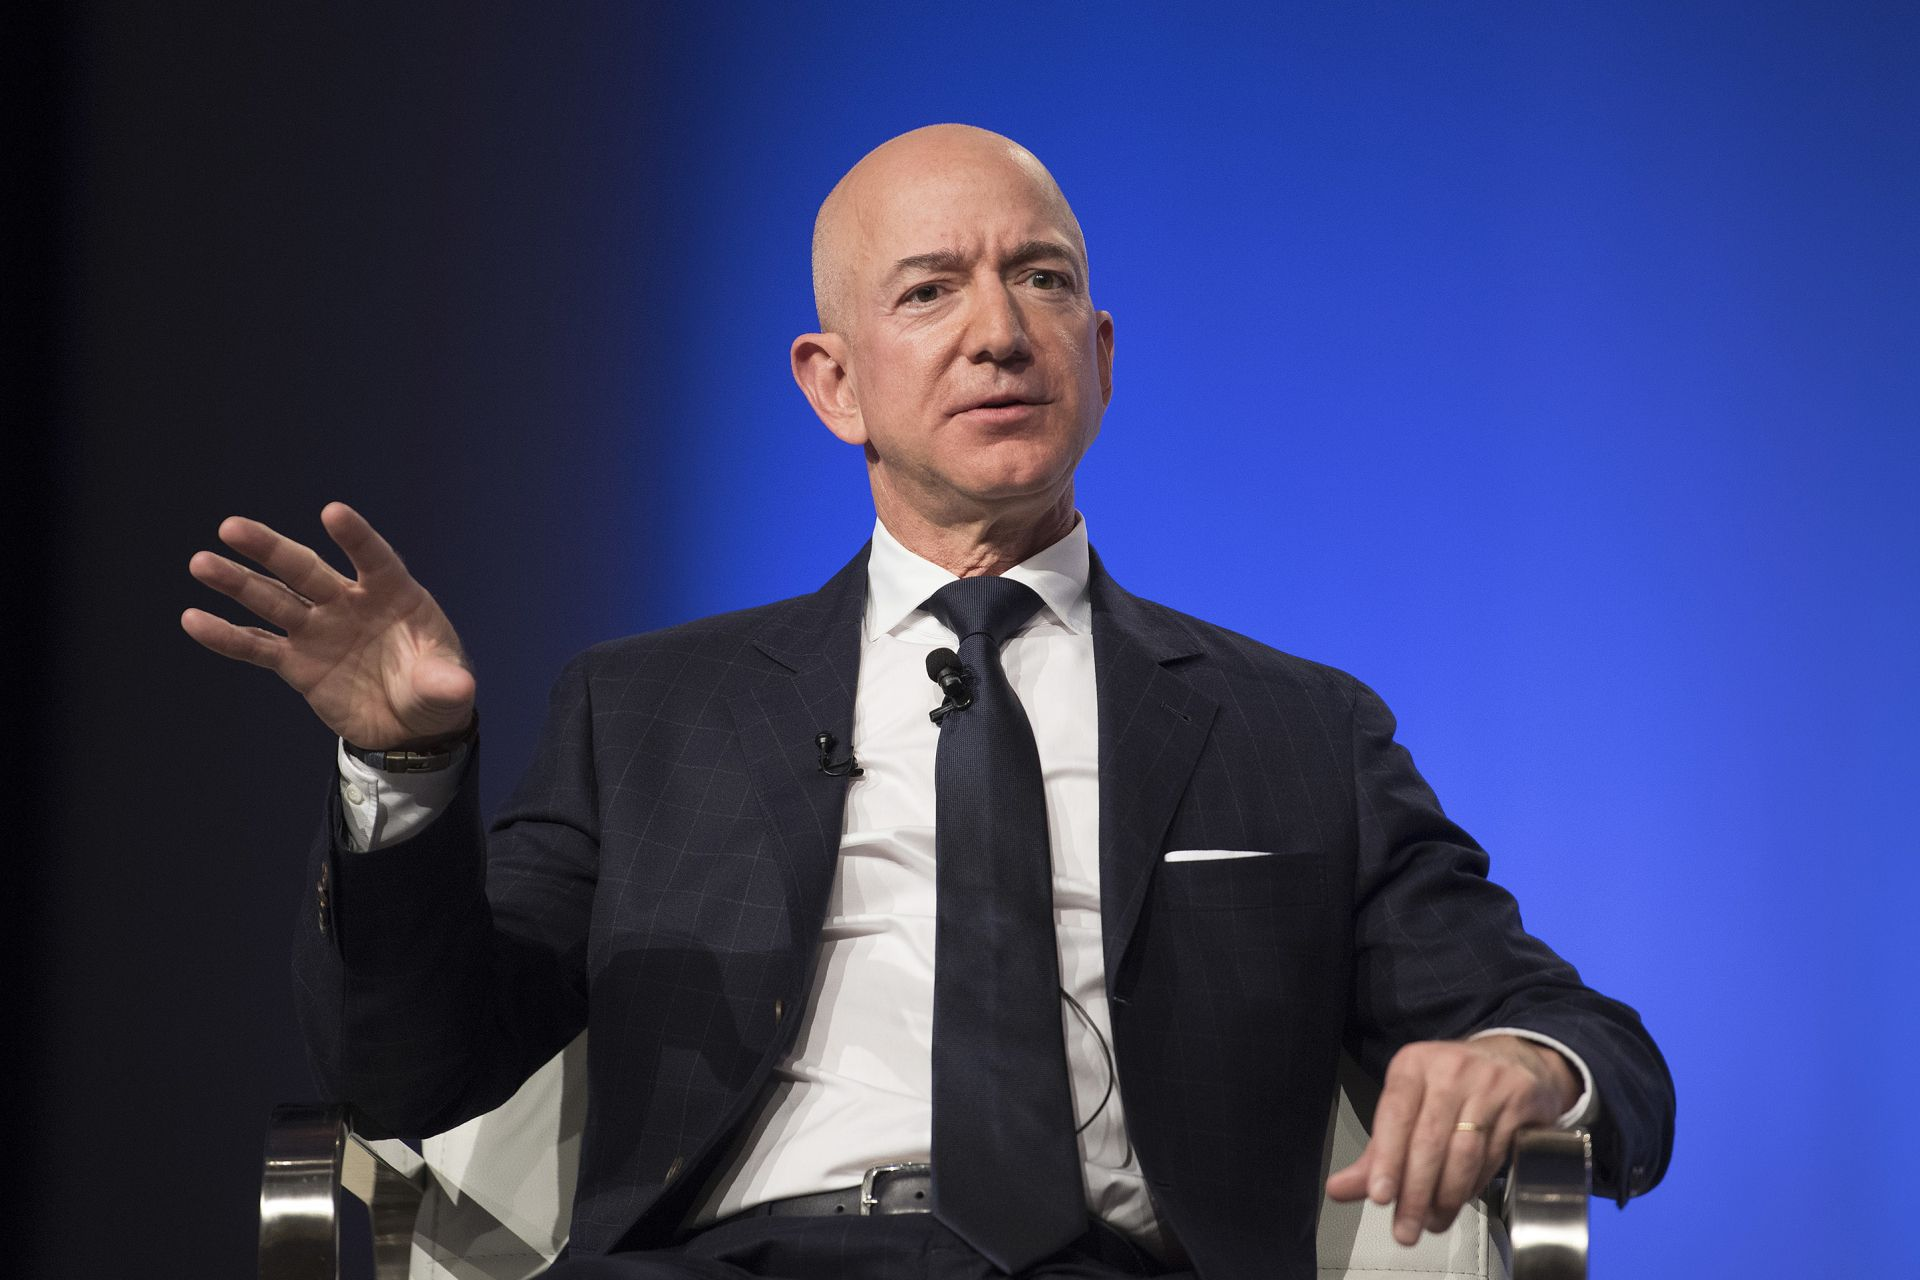 Amazon and Blue Origin founder Jeff Bezos provides the keynote address at the Air Force Association's Annual Air, Space & Cyber Conference in Oxen Hill, MD, on September 19, 2018. / AFP PHOTO / Jim WATSON